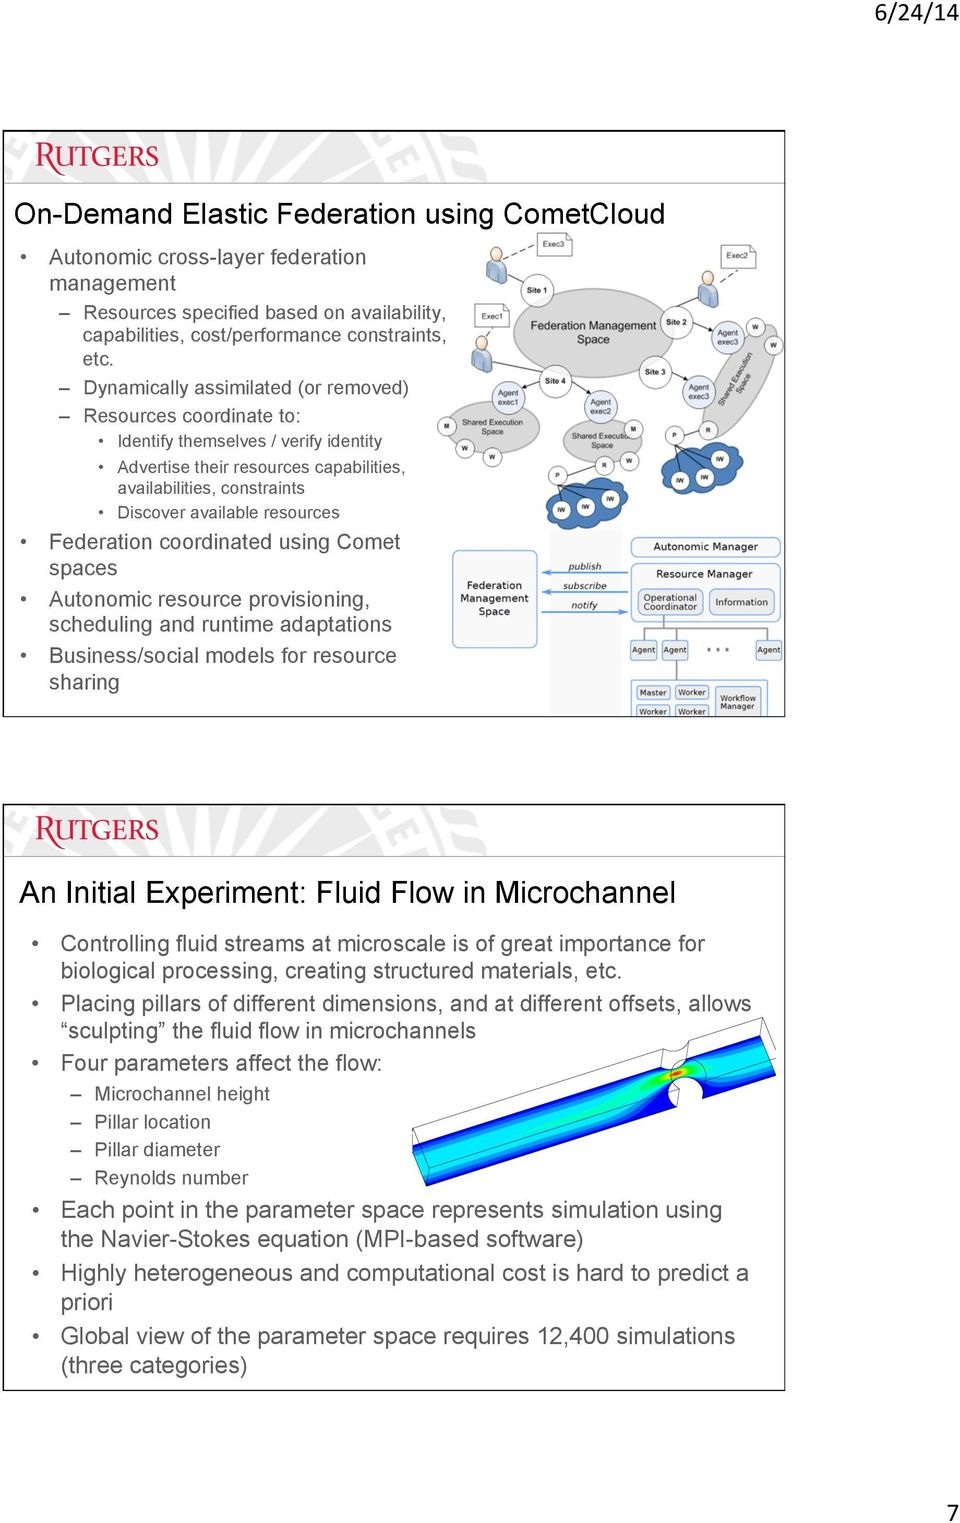 Federation coordinated using Comet spaces Autonomic resource provisioning, scheduling and runtime adaptations Business/social models for resource sharing An Initial Experiment: Fluid Flow in